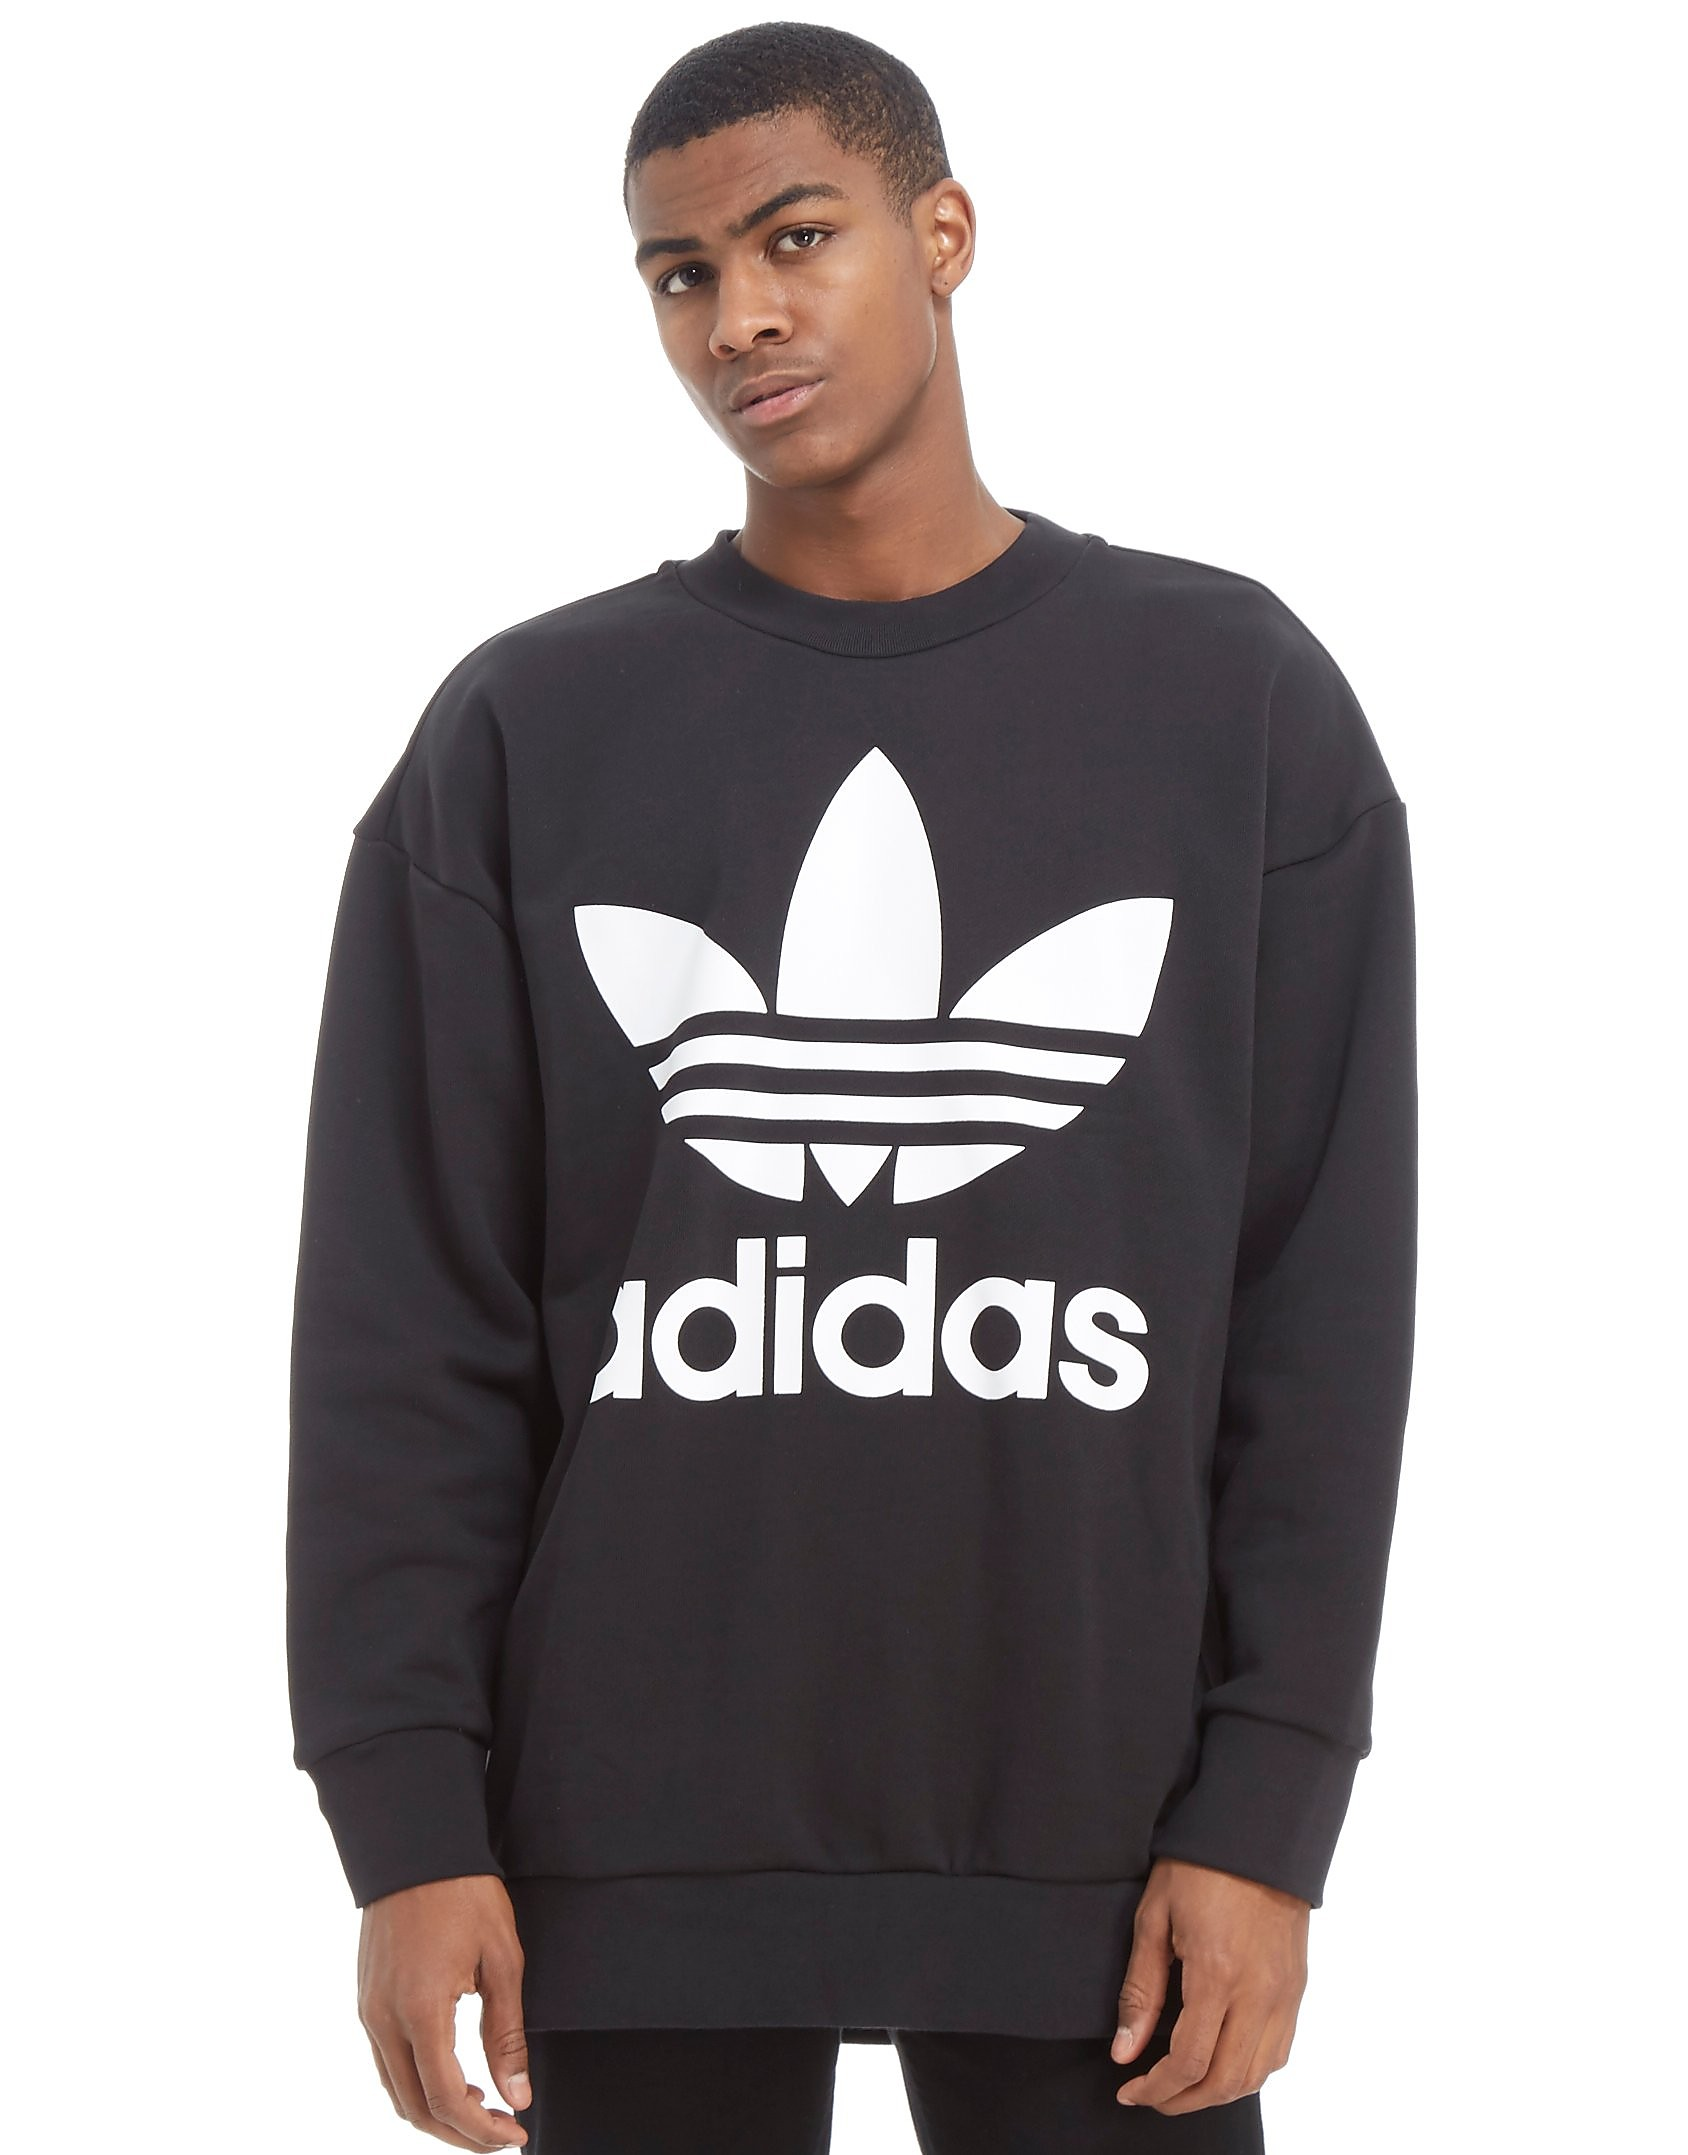 adidas Originals Sweat-shirt Trefoil Oversized Homme